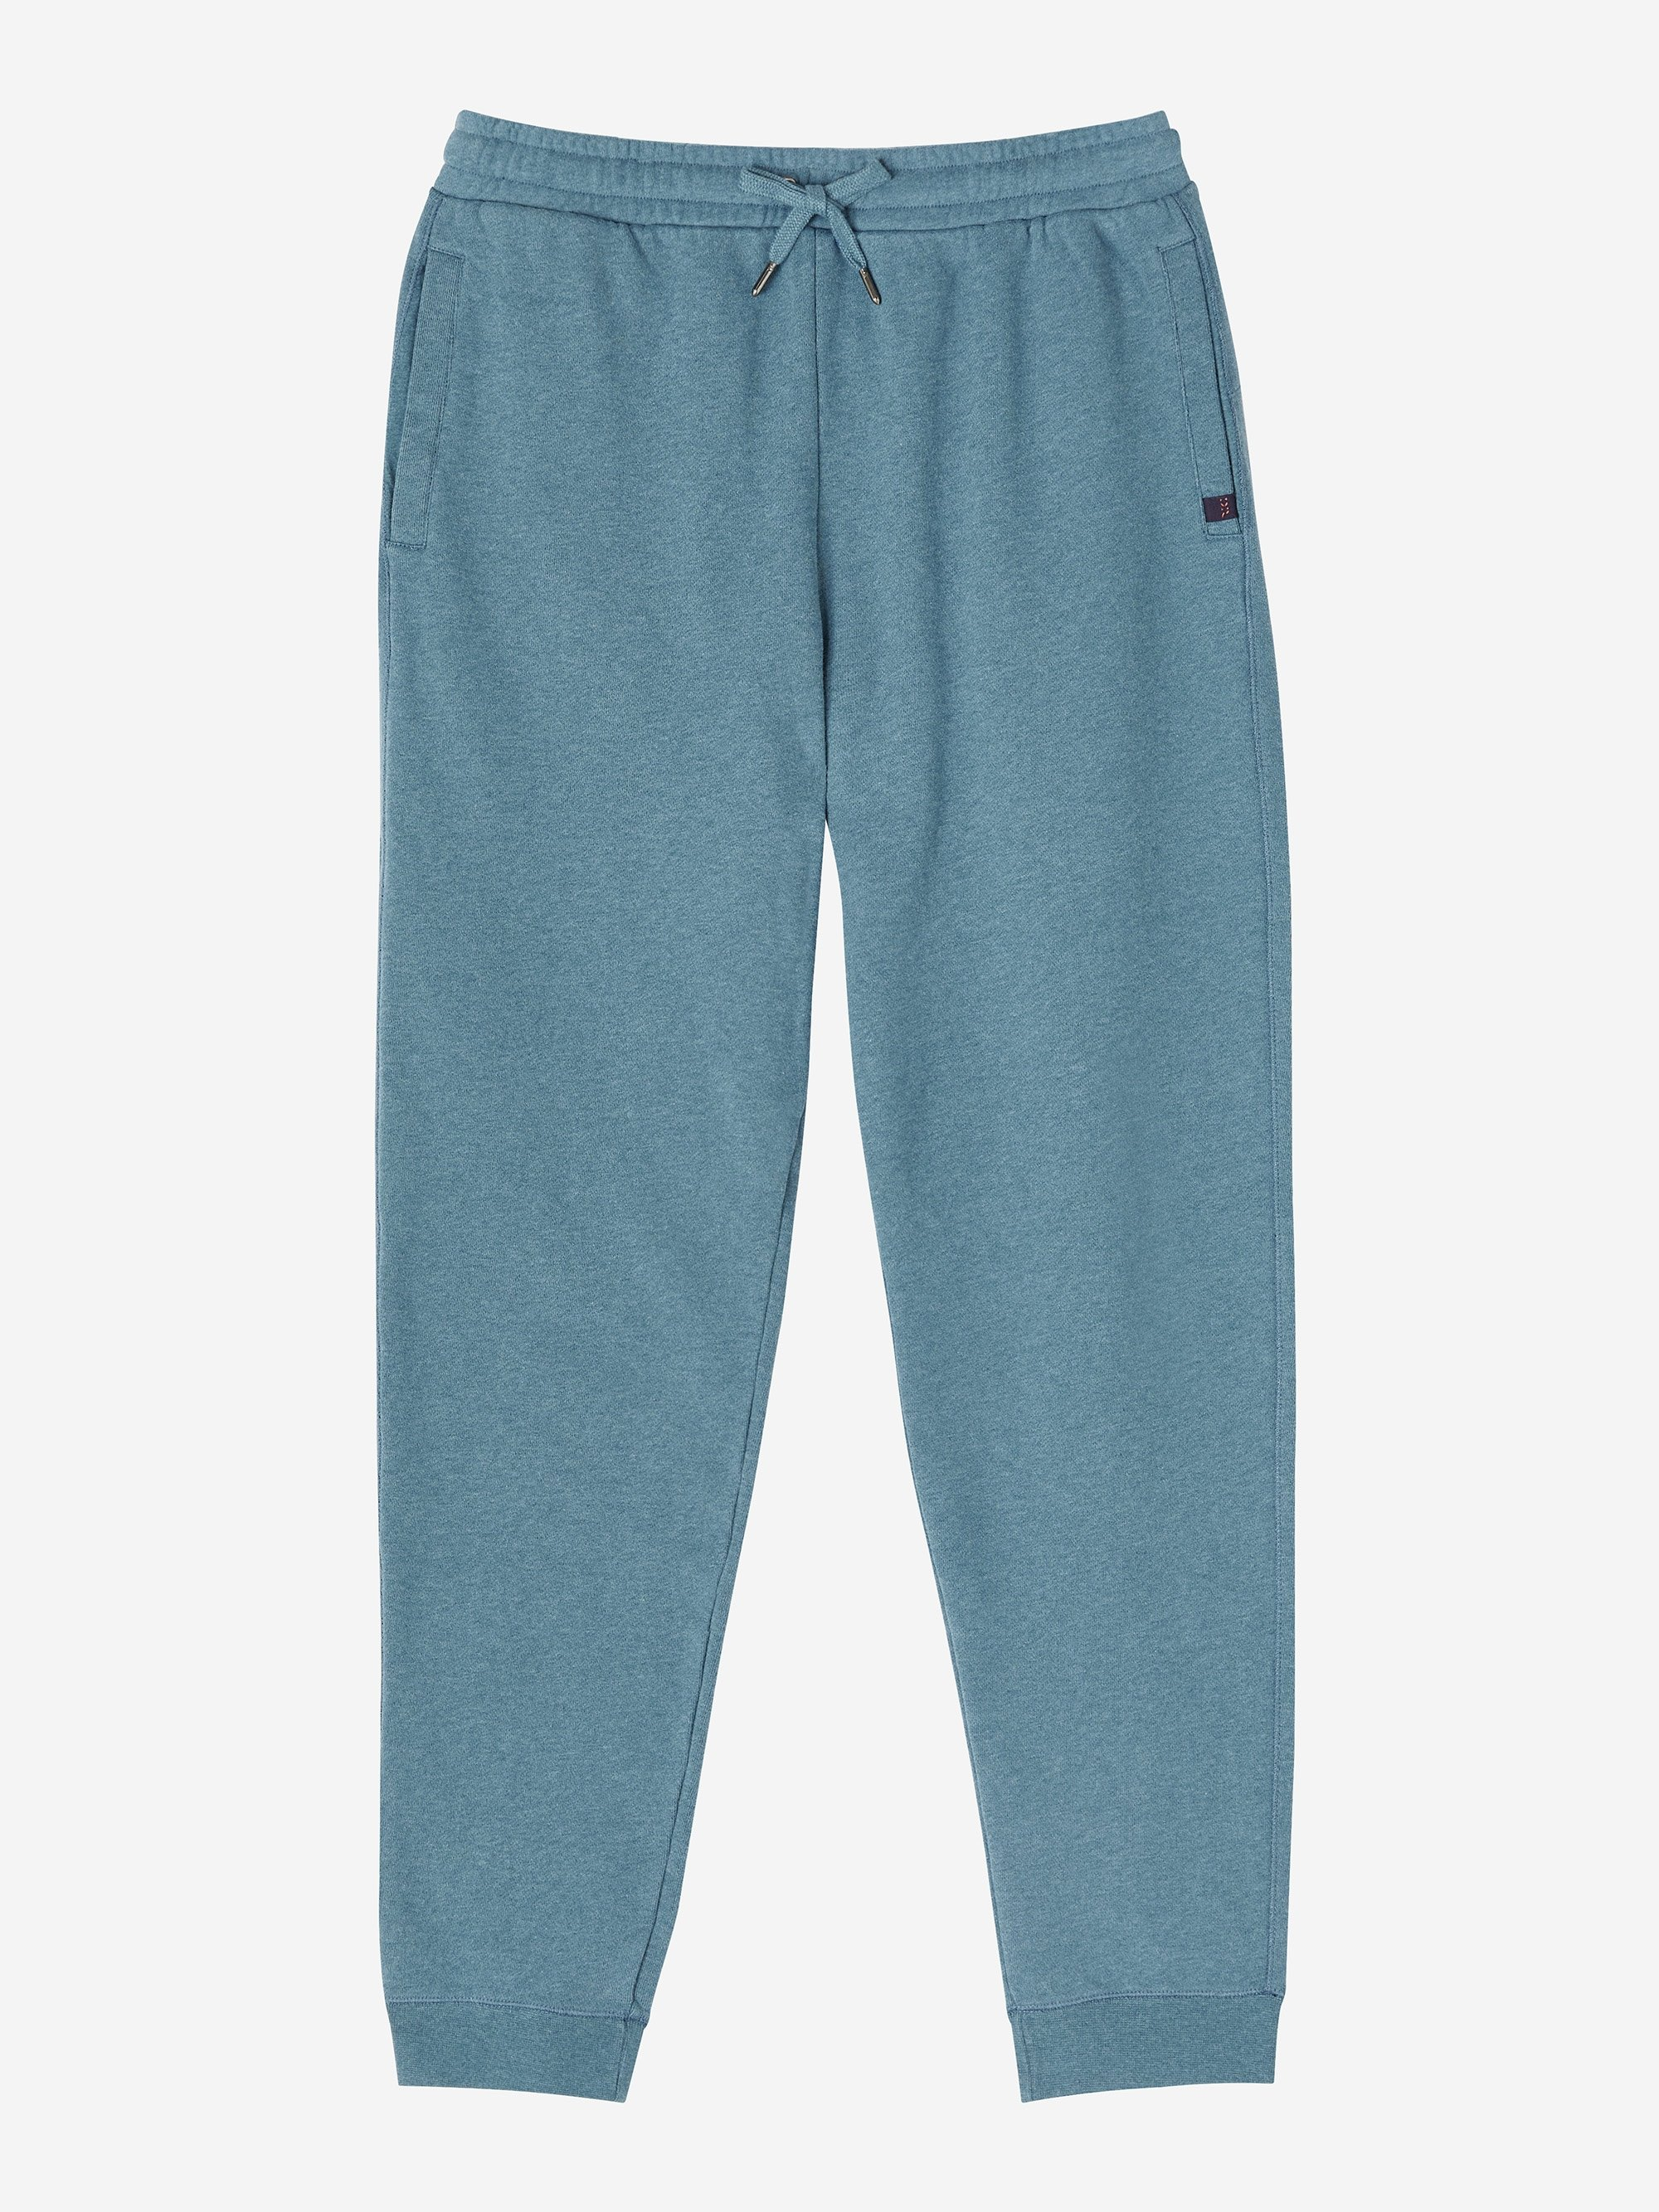 Men's Sweatpants Devon 3 Loopback Cotton Blue